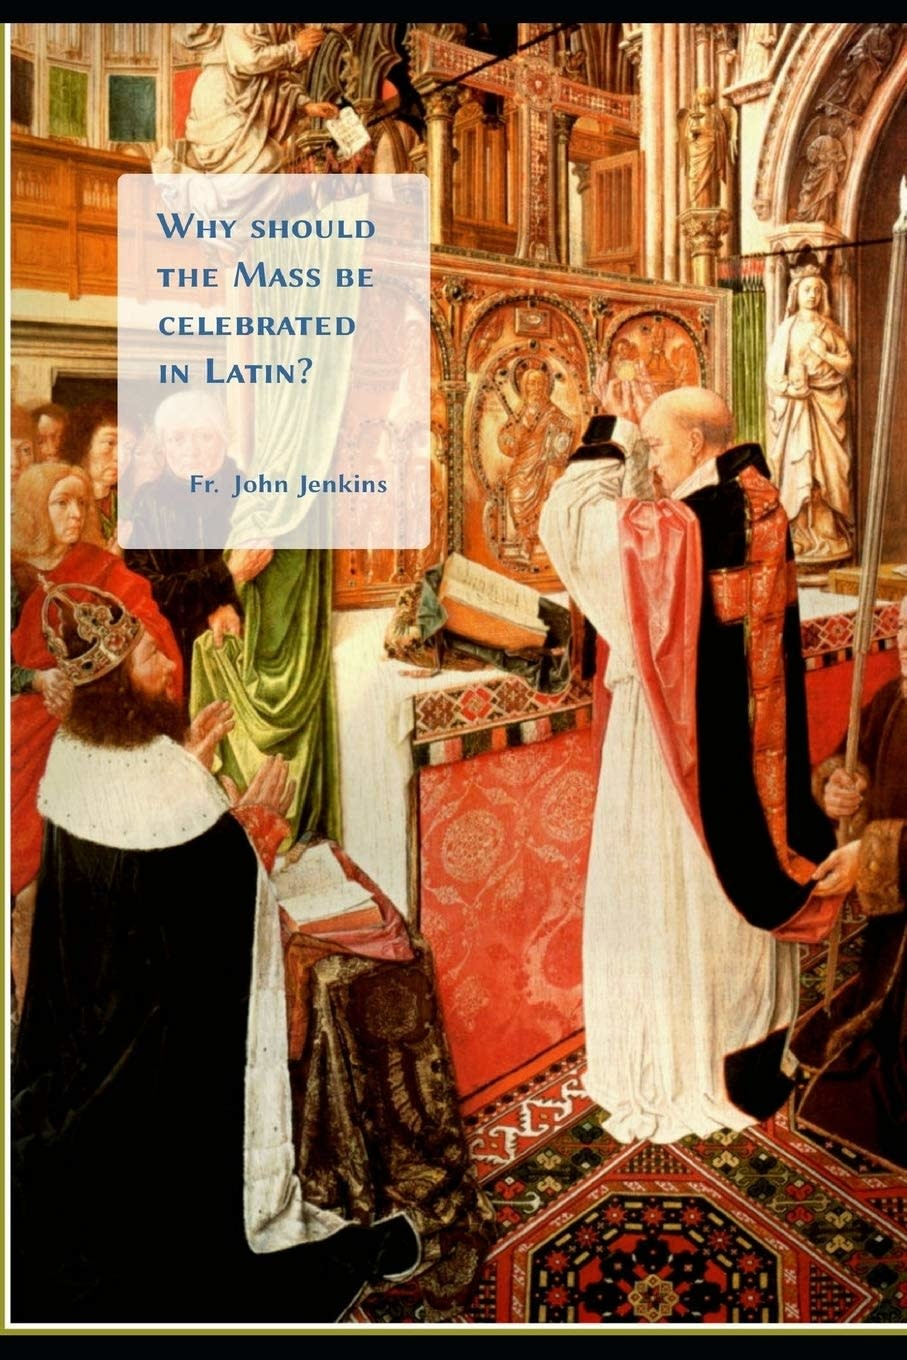 Why should the Mass be celebrated in Latin?